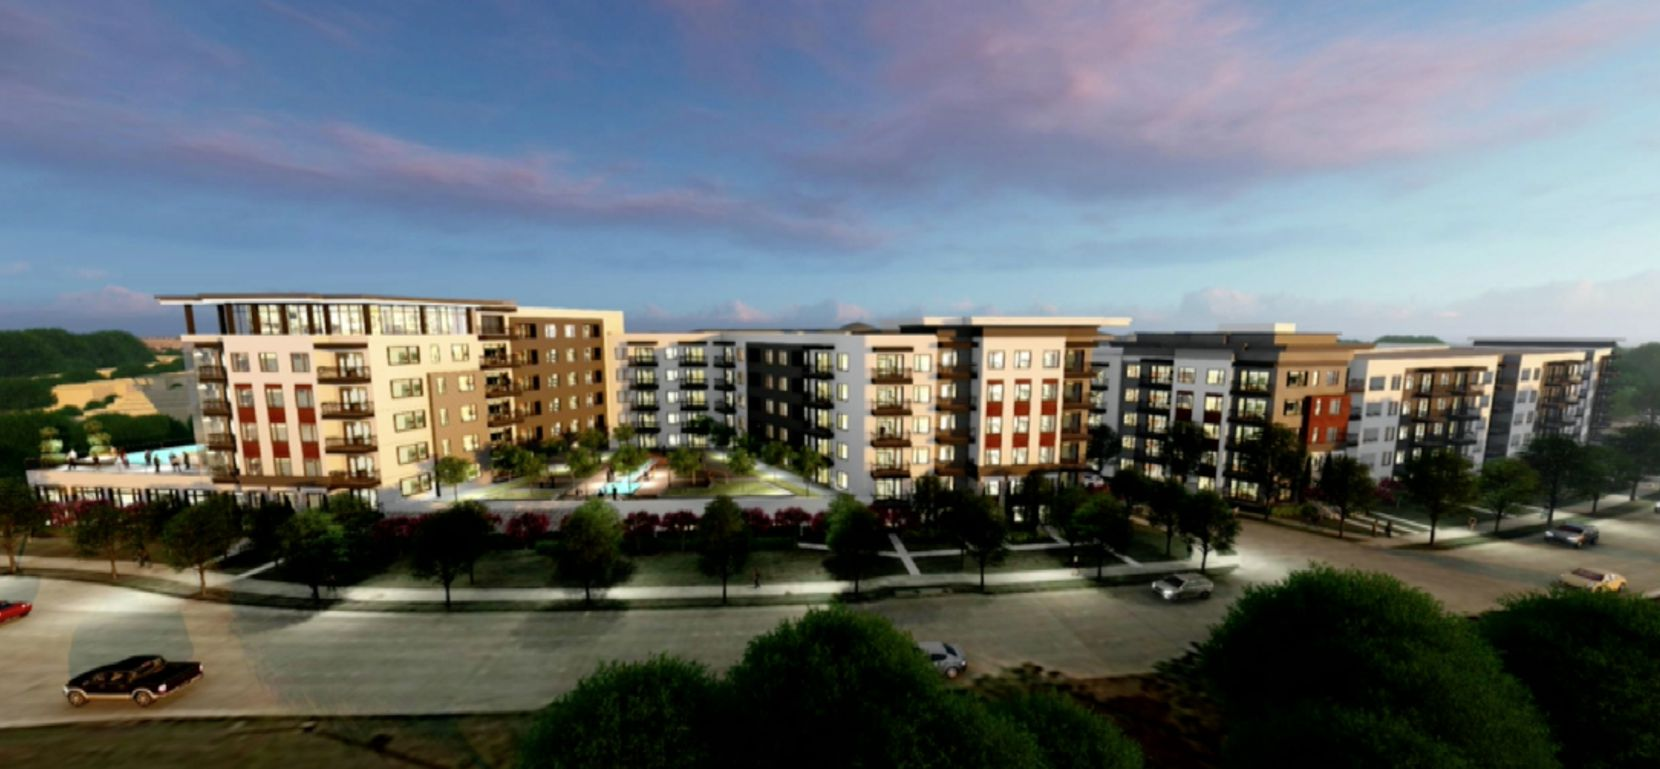 A concept plan for Kairoi Residential's planned Plano apartments.